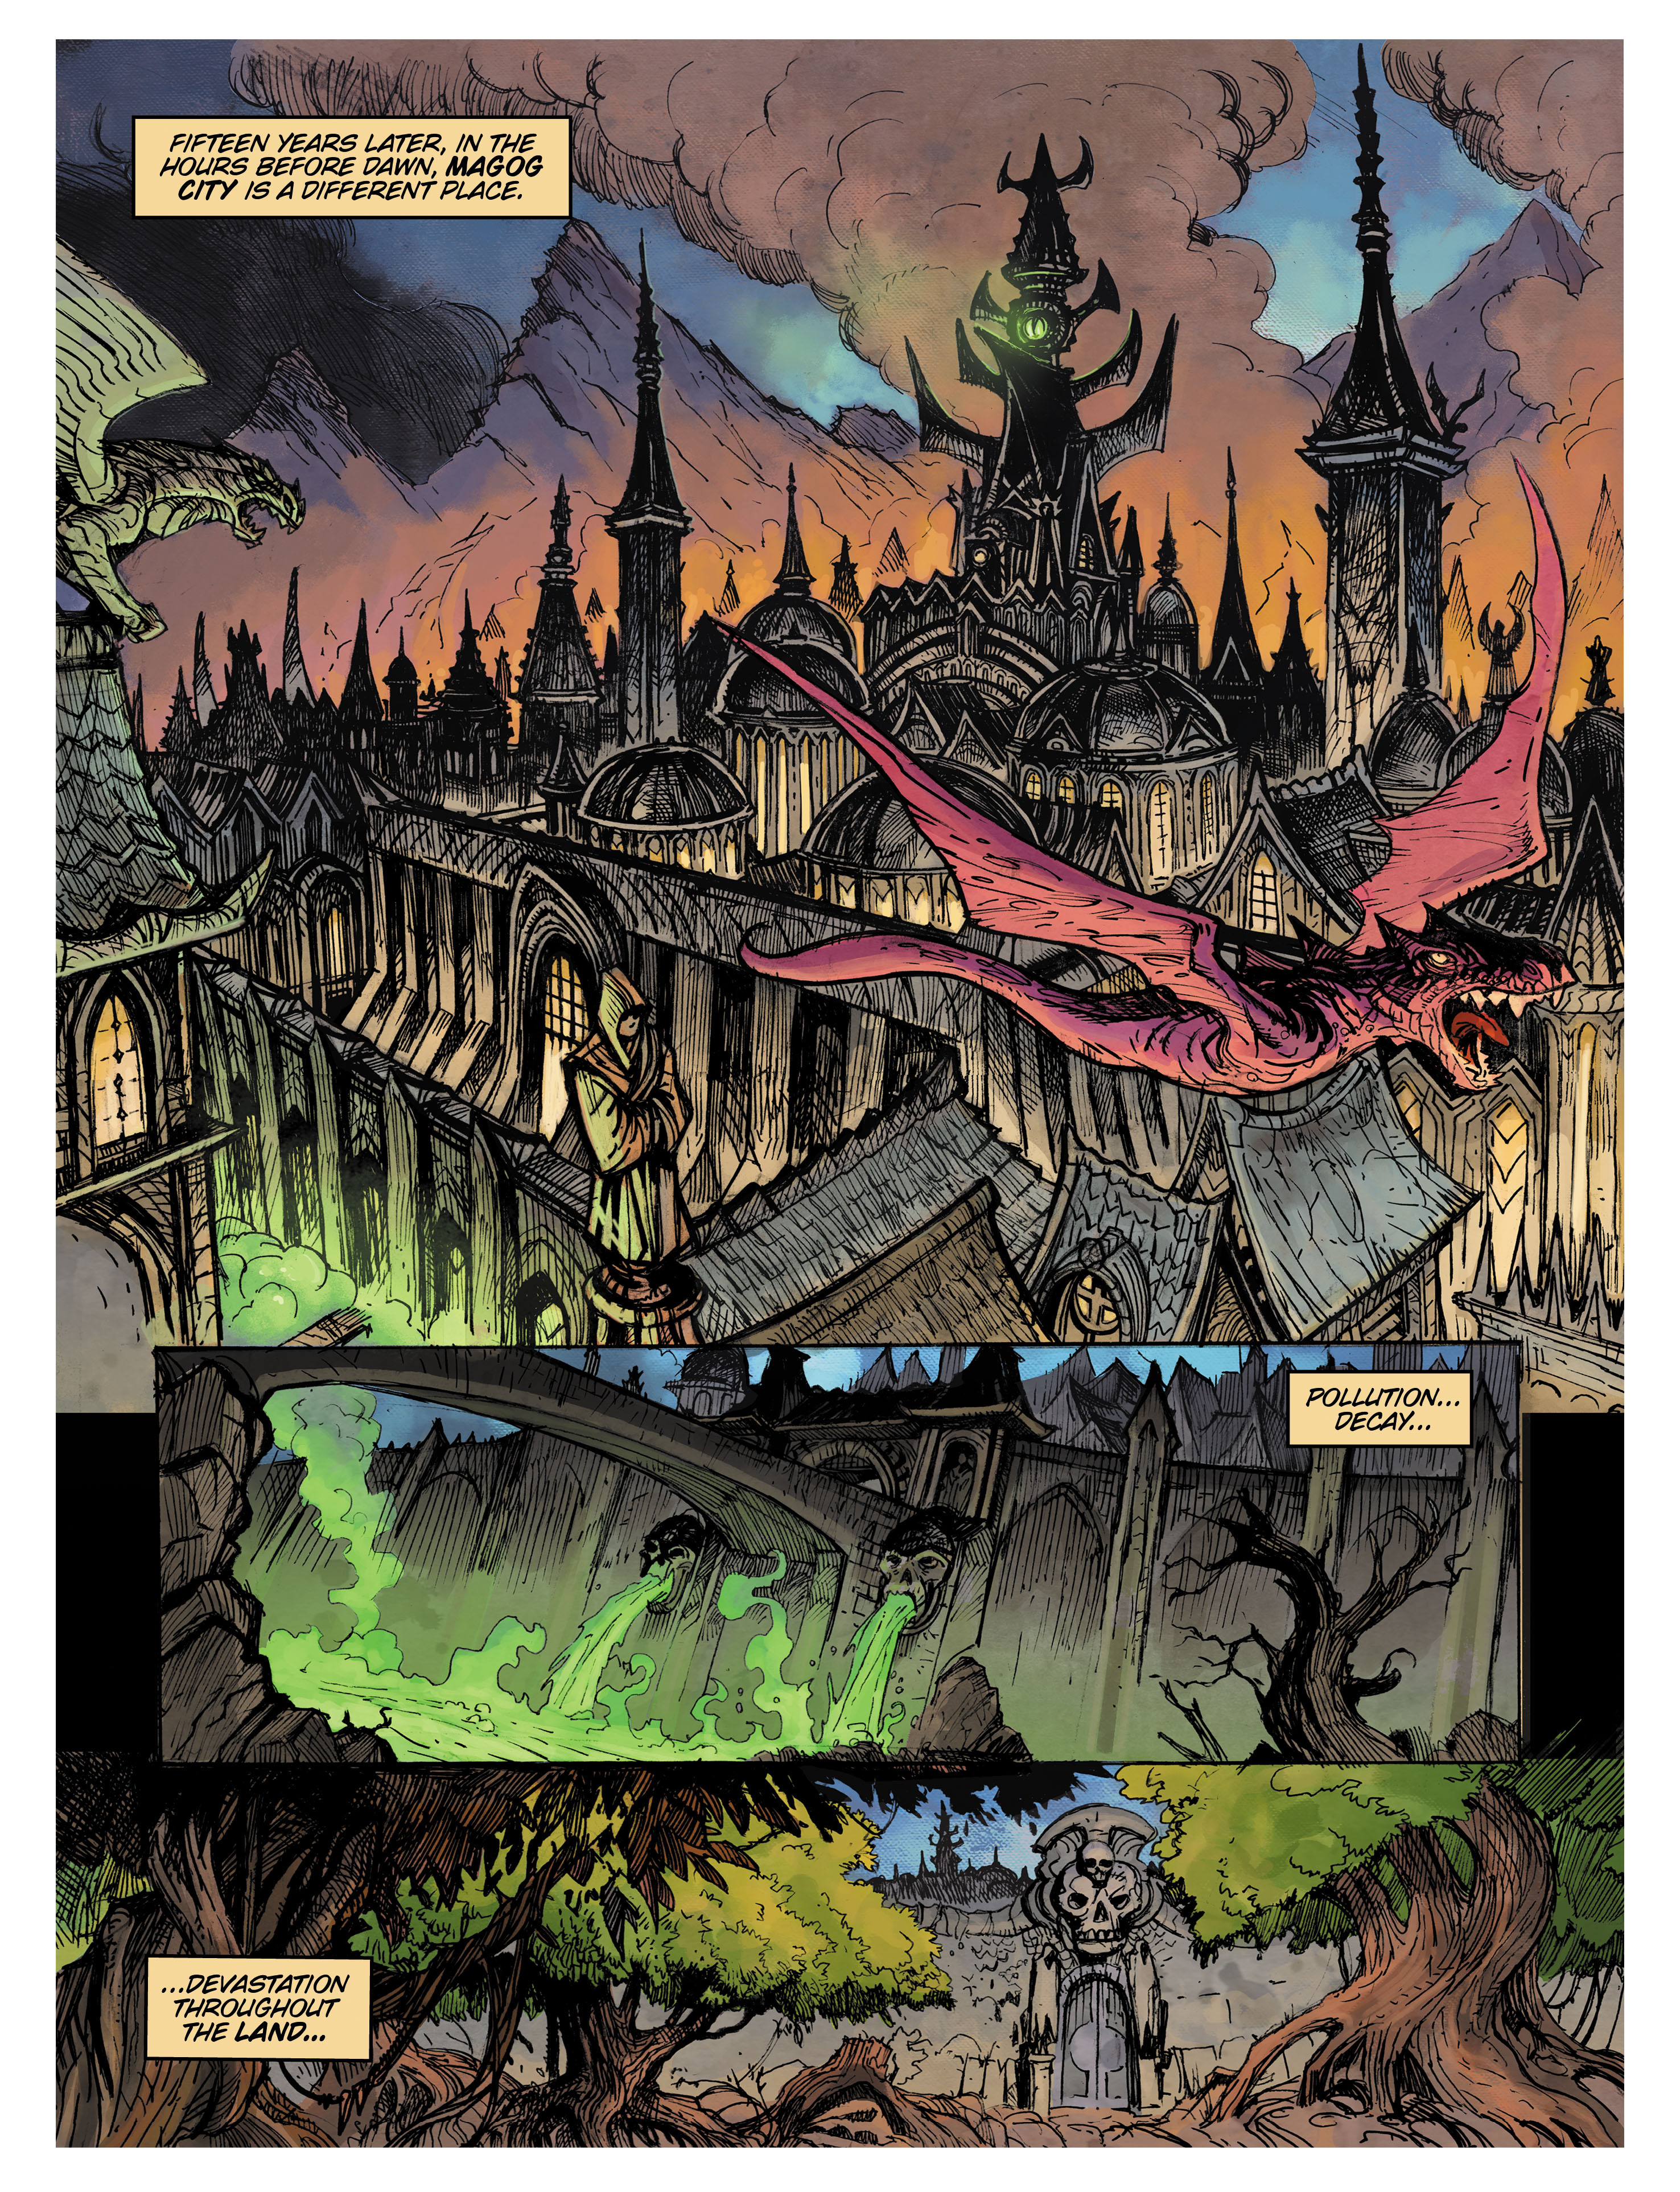 Landing somewhere between The Lord of the Rings and the Dark Crystal, Monsterwood is a coming of age story that combines a fairy tale aesthetic with appropriately dark edge....,